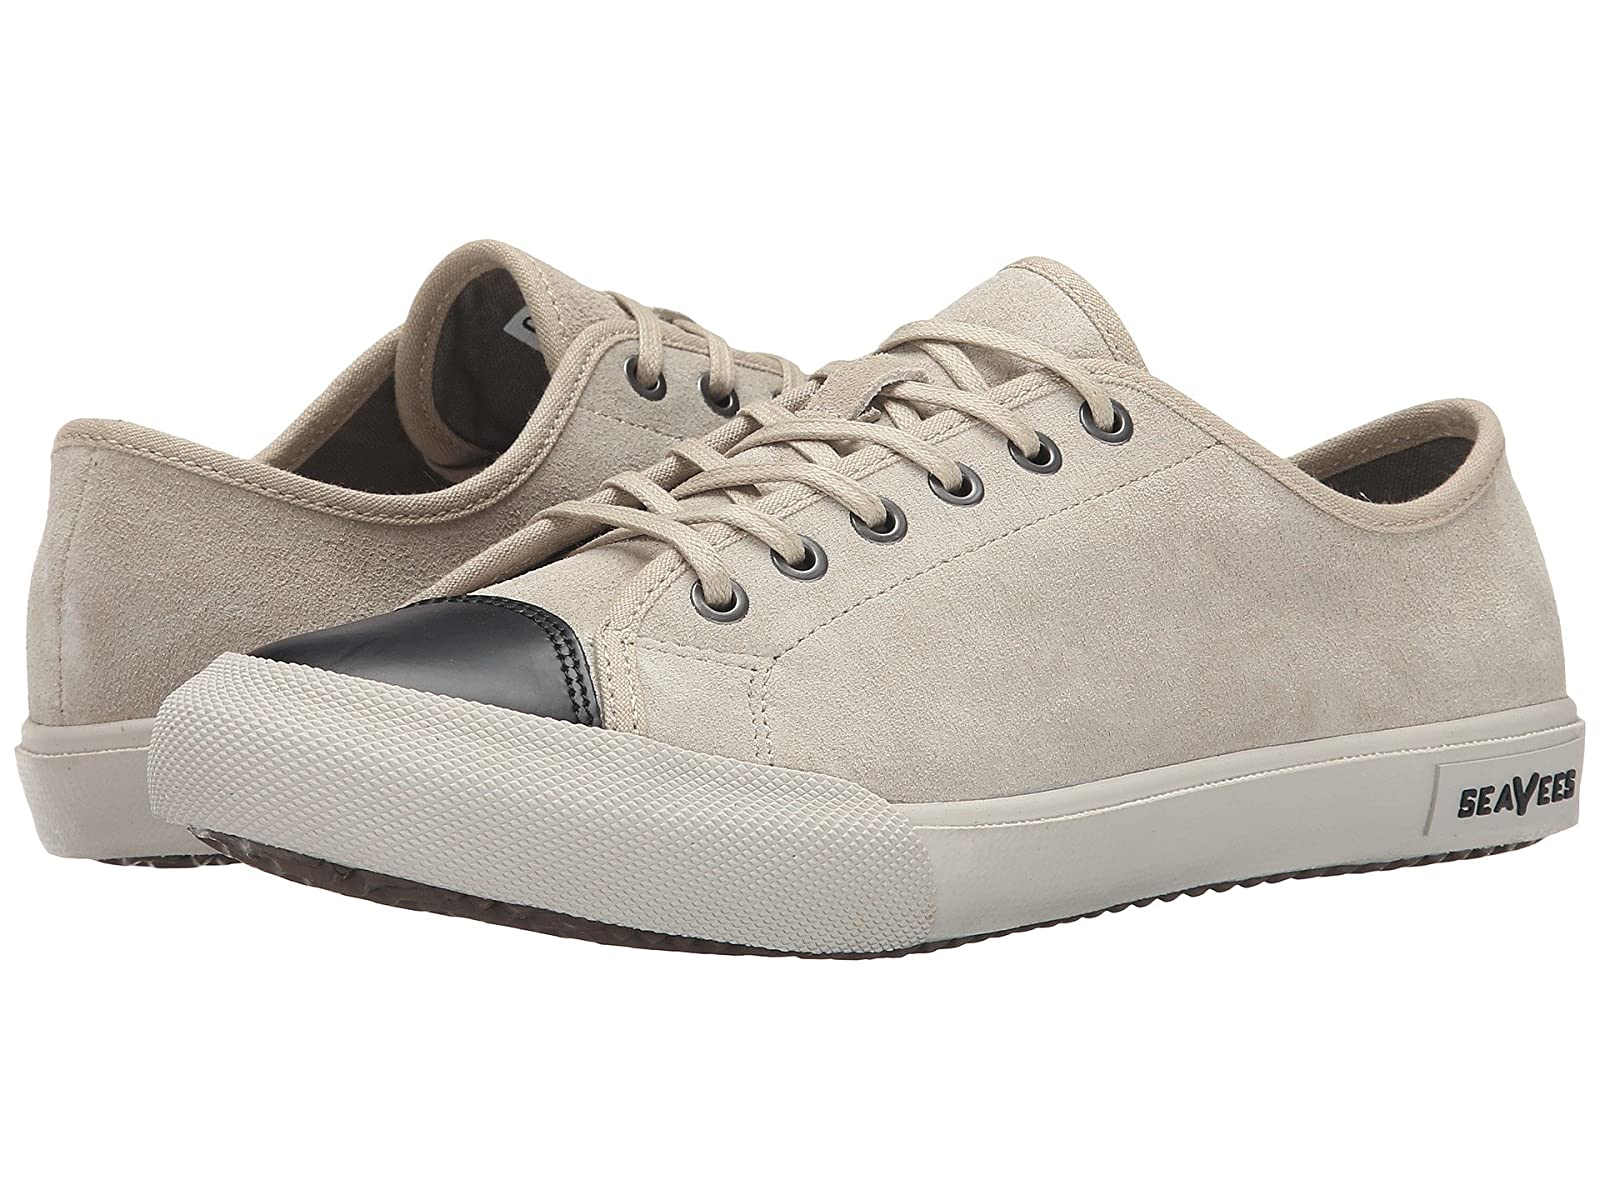 SeaVees 08/61 Army Issue Low DharmaCheap and distinctive eye-catching shoes